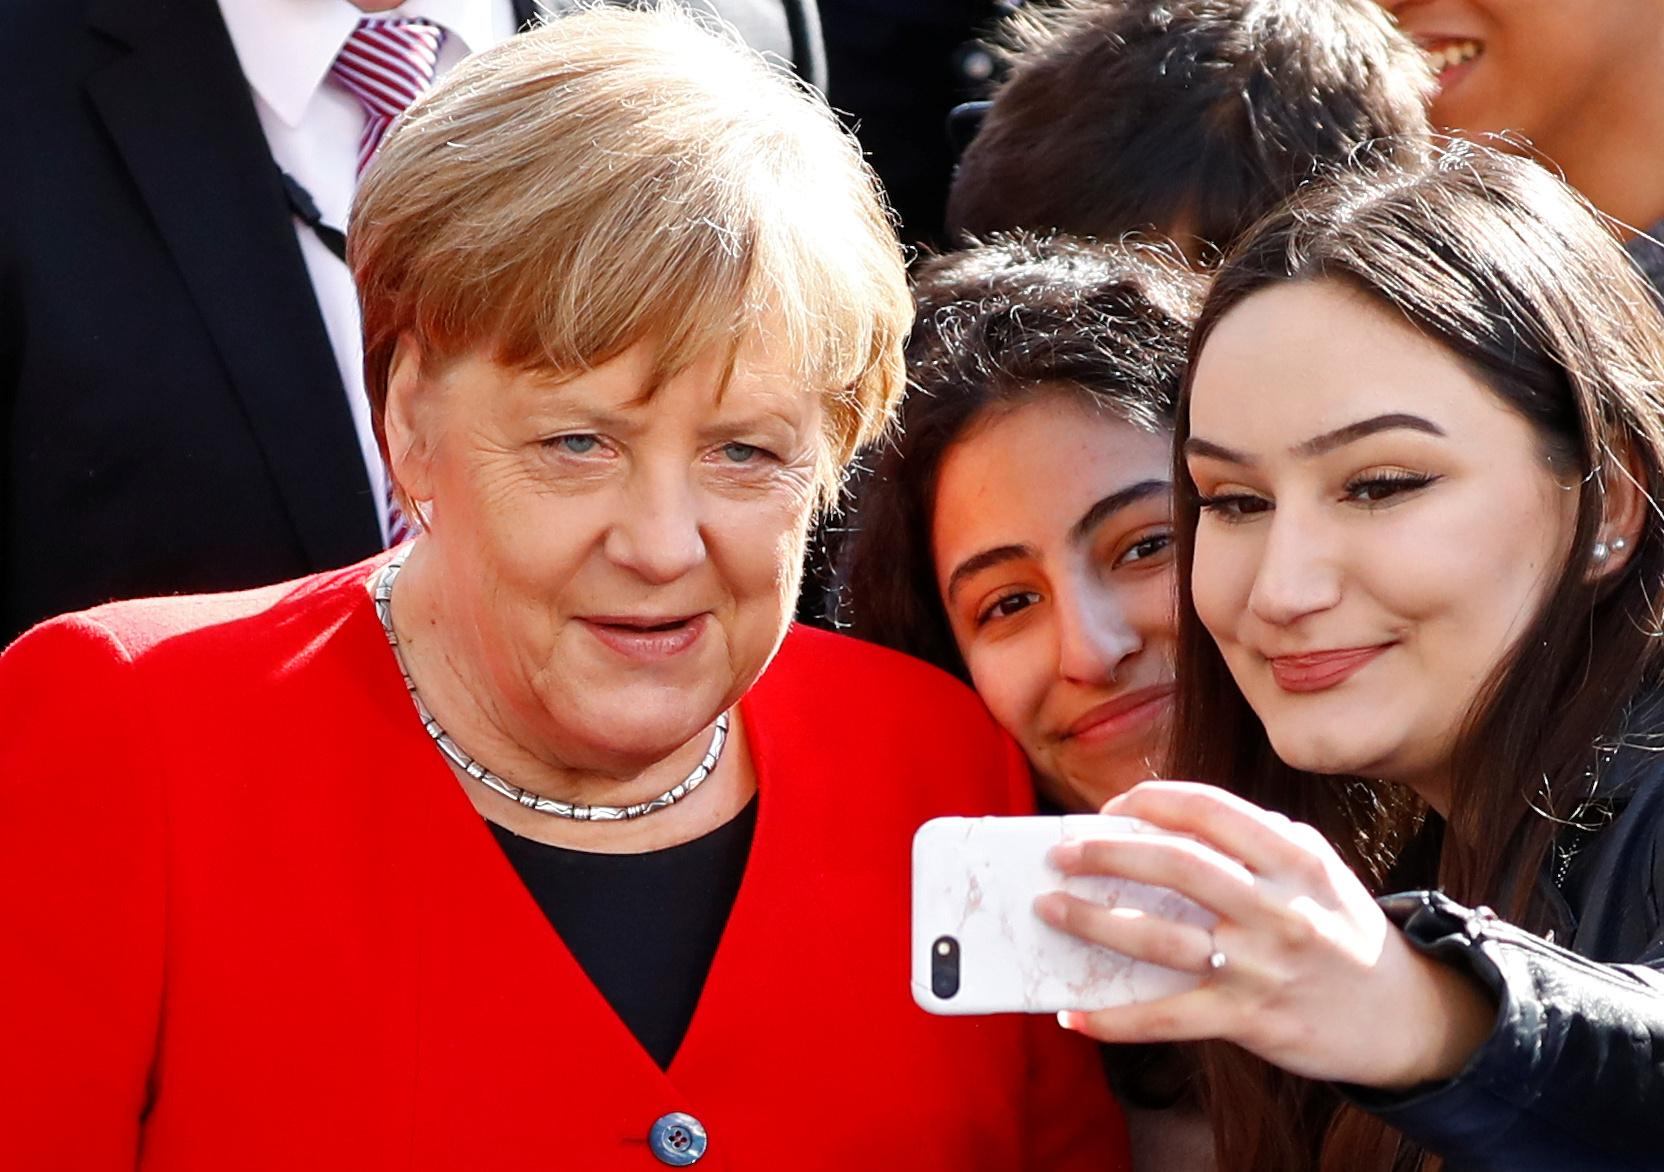 Merkel says she serene hopes a Brexit resolution could well per chance moreover be stumbled on